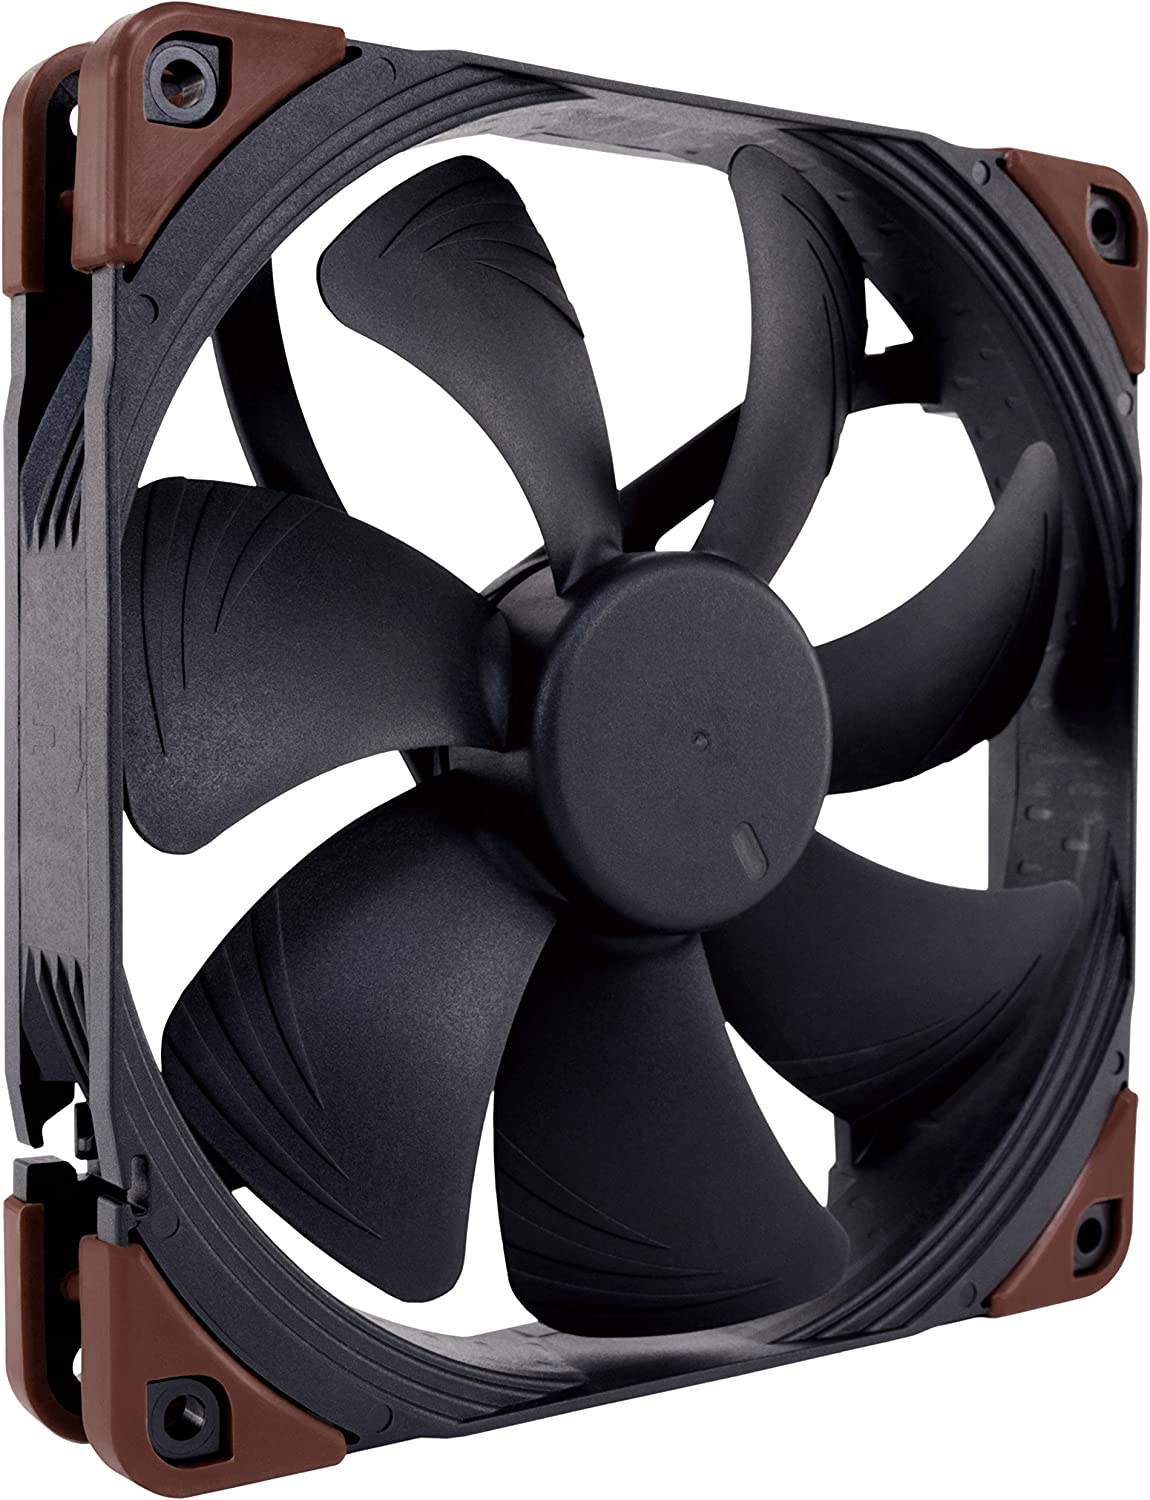 Noctua NF-A14 iPPC-2000, Heavy Duty Cooling Fan, 3-Pin, 2000 RPM (140mm, Black)